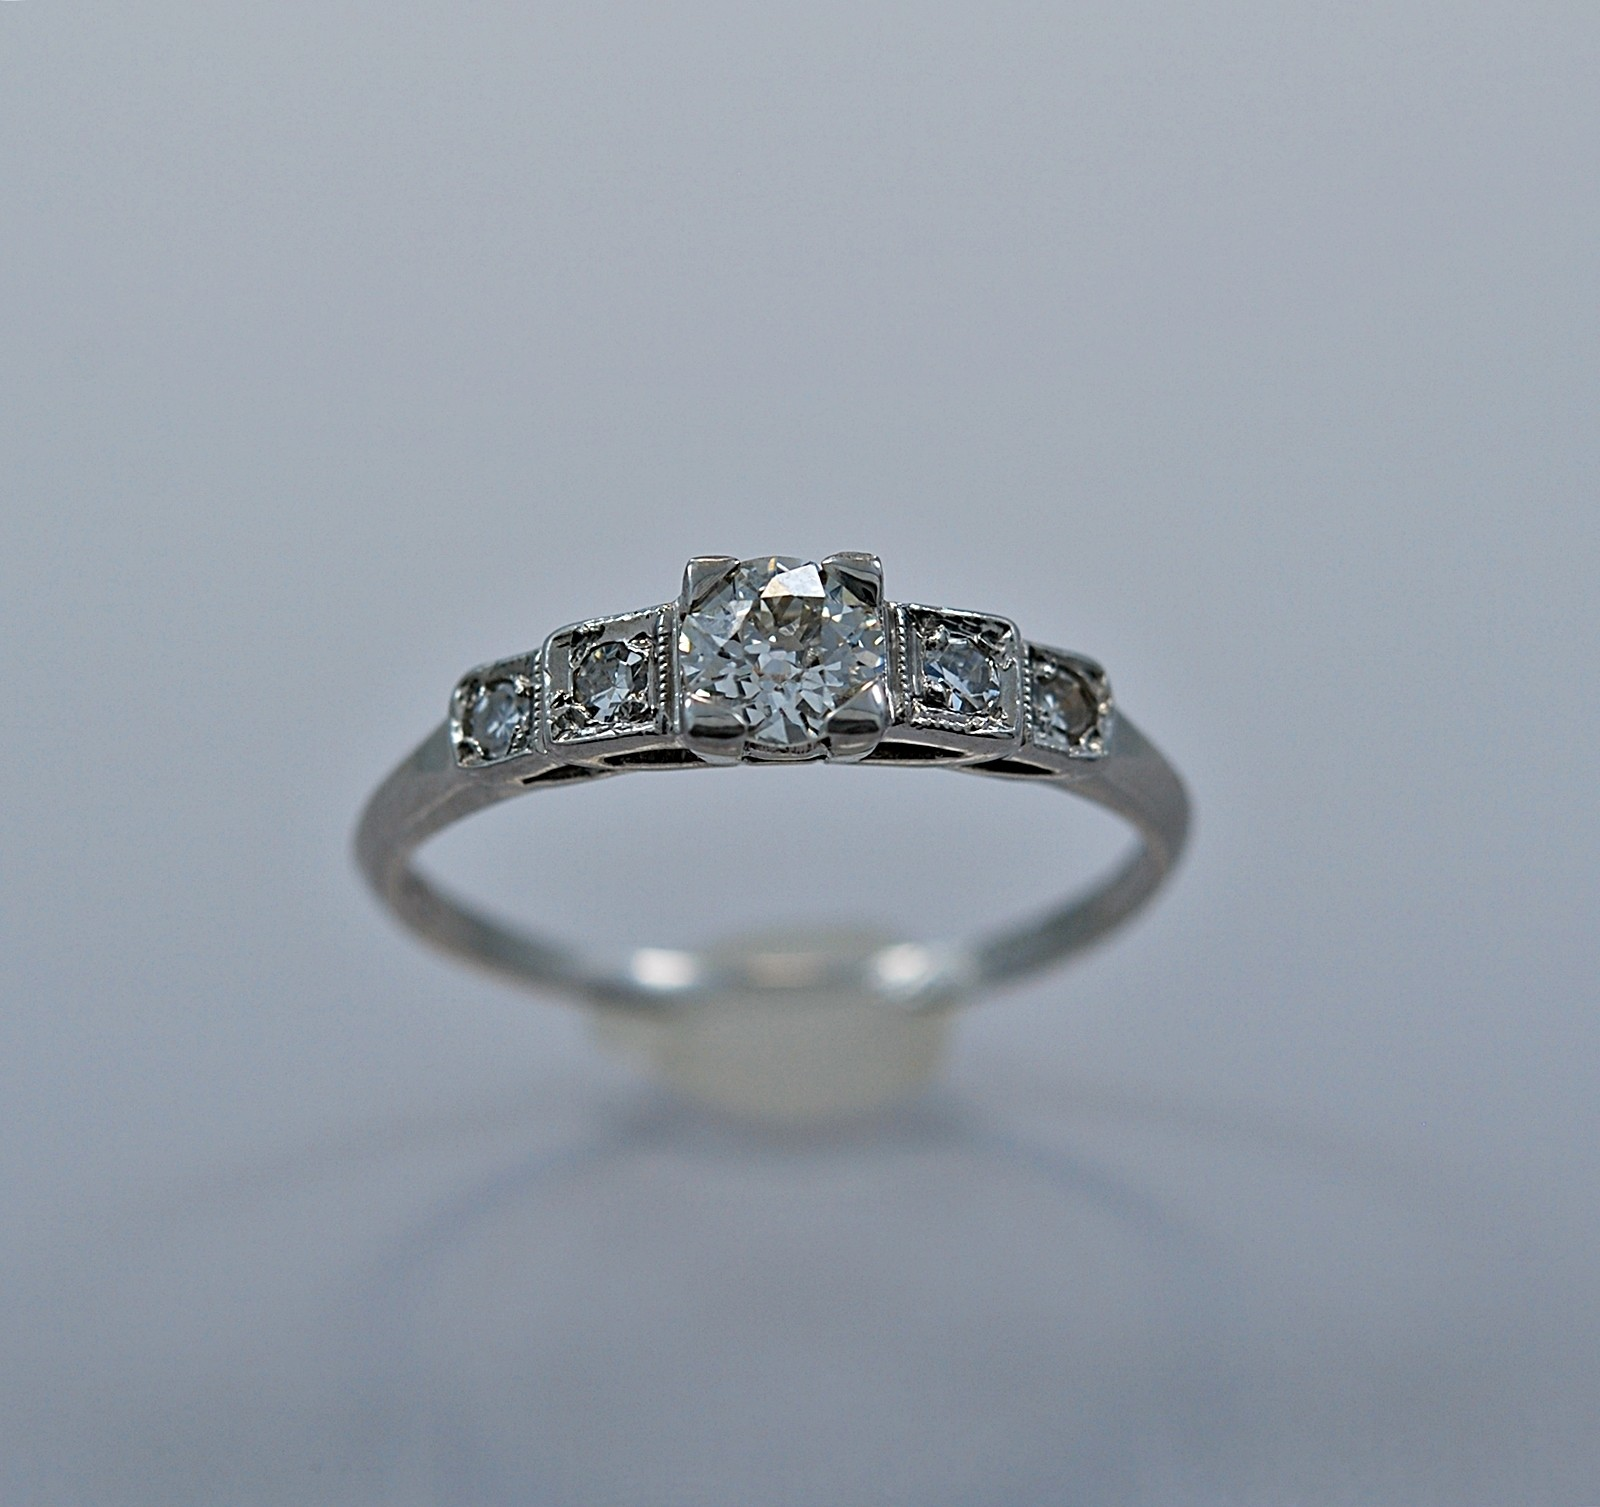 37-ct-diamond-platinum-art-deco-style-engagement-ring